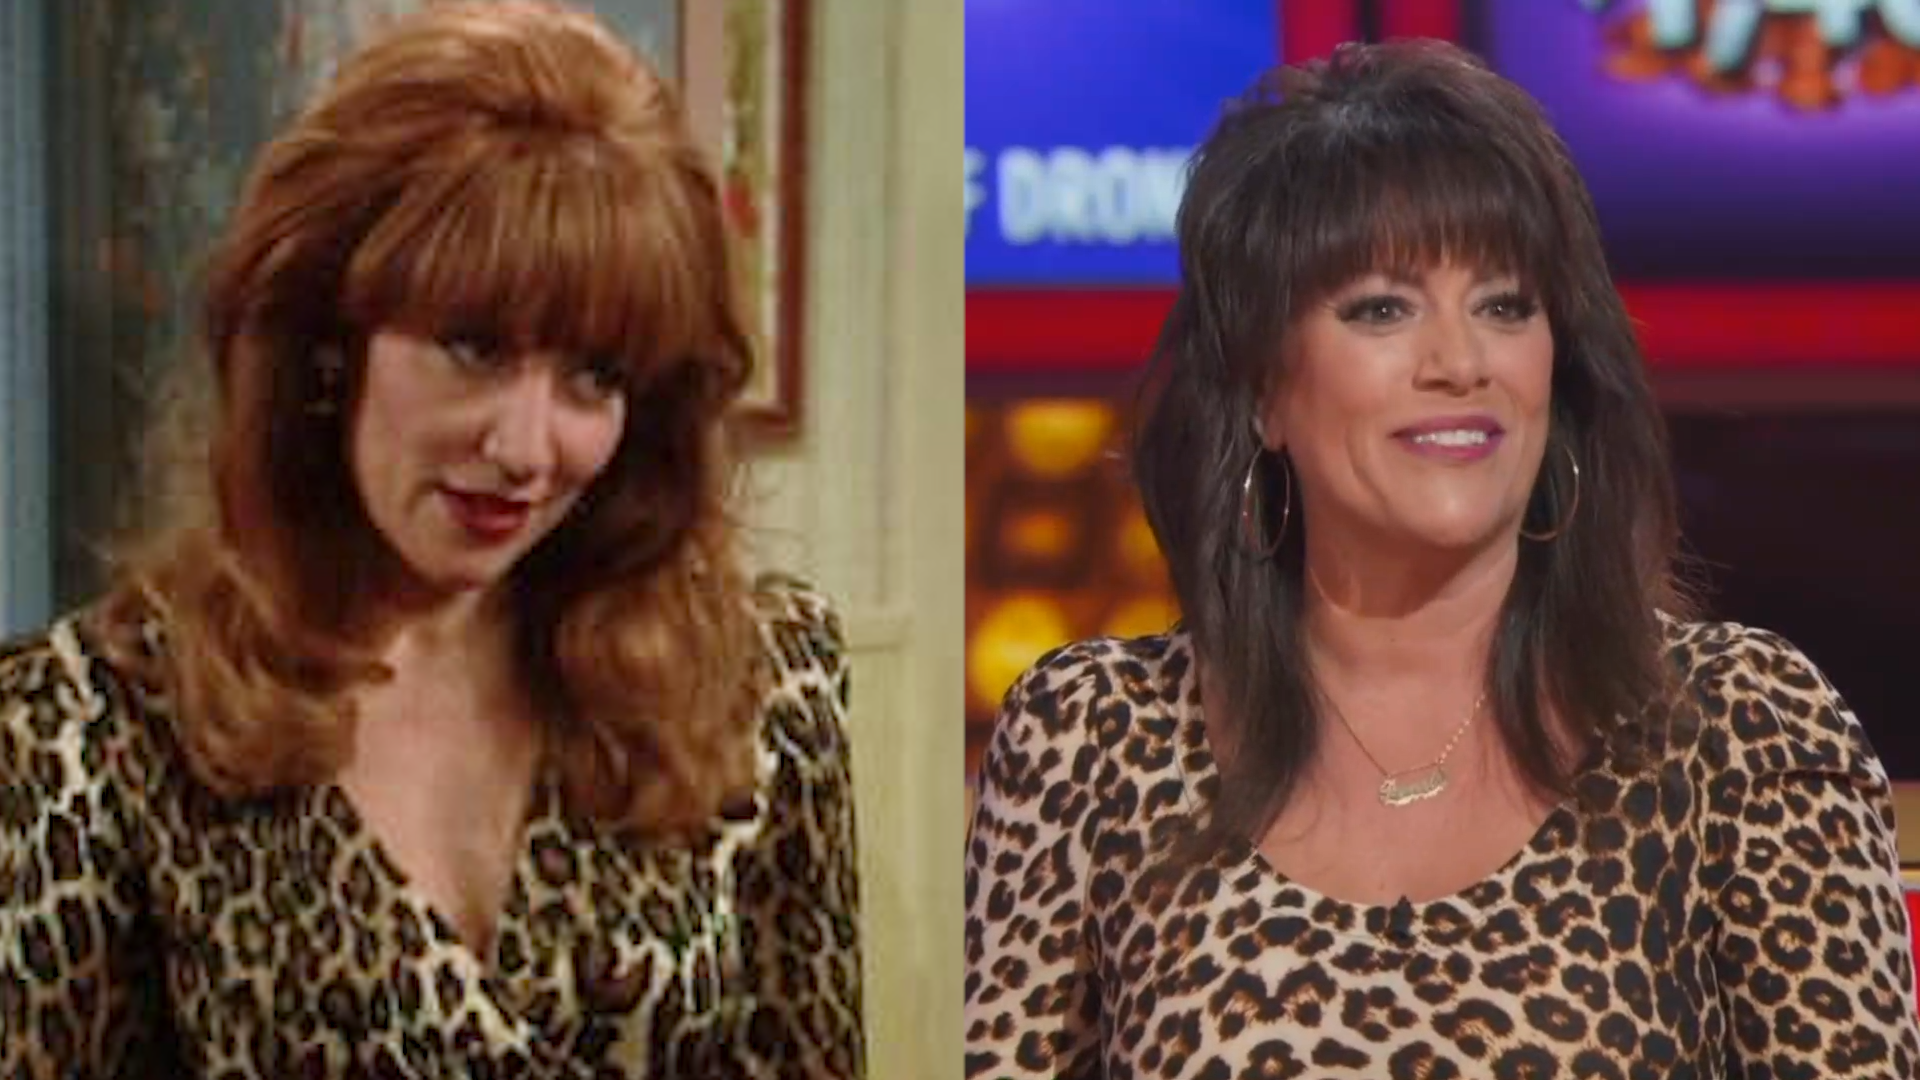 'Press Your Luck' winner's stunning resemblance to 'Married... With Children' character